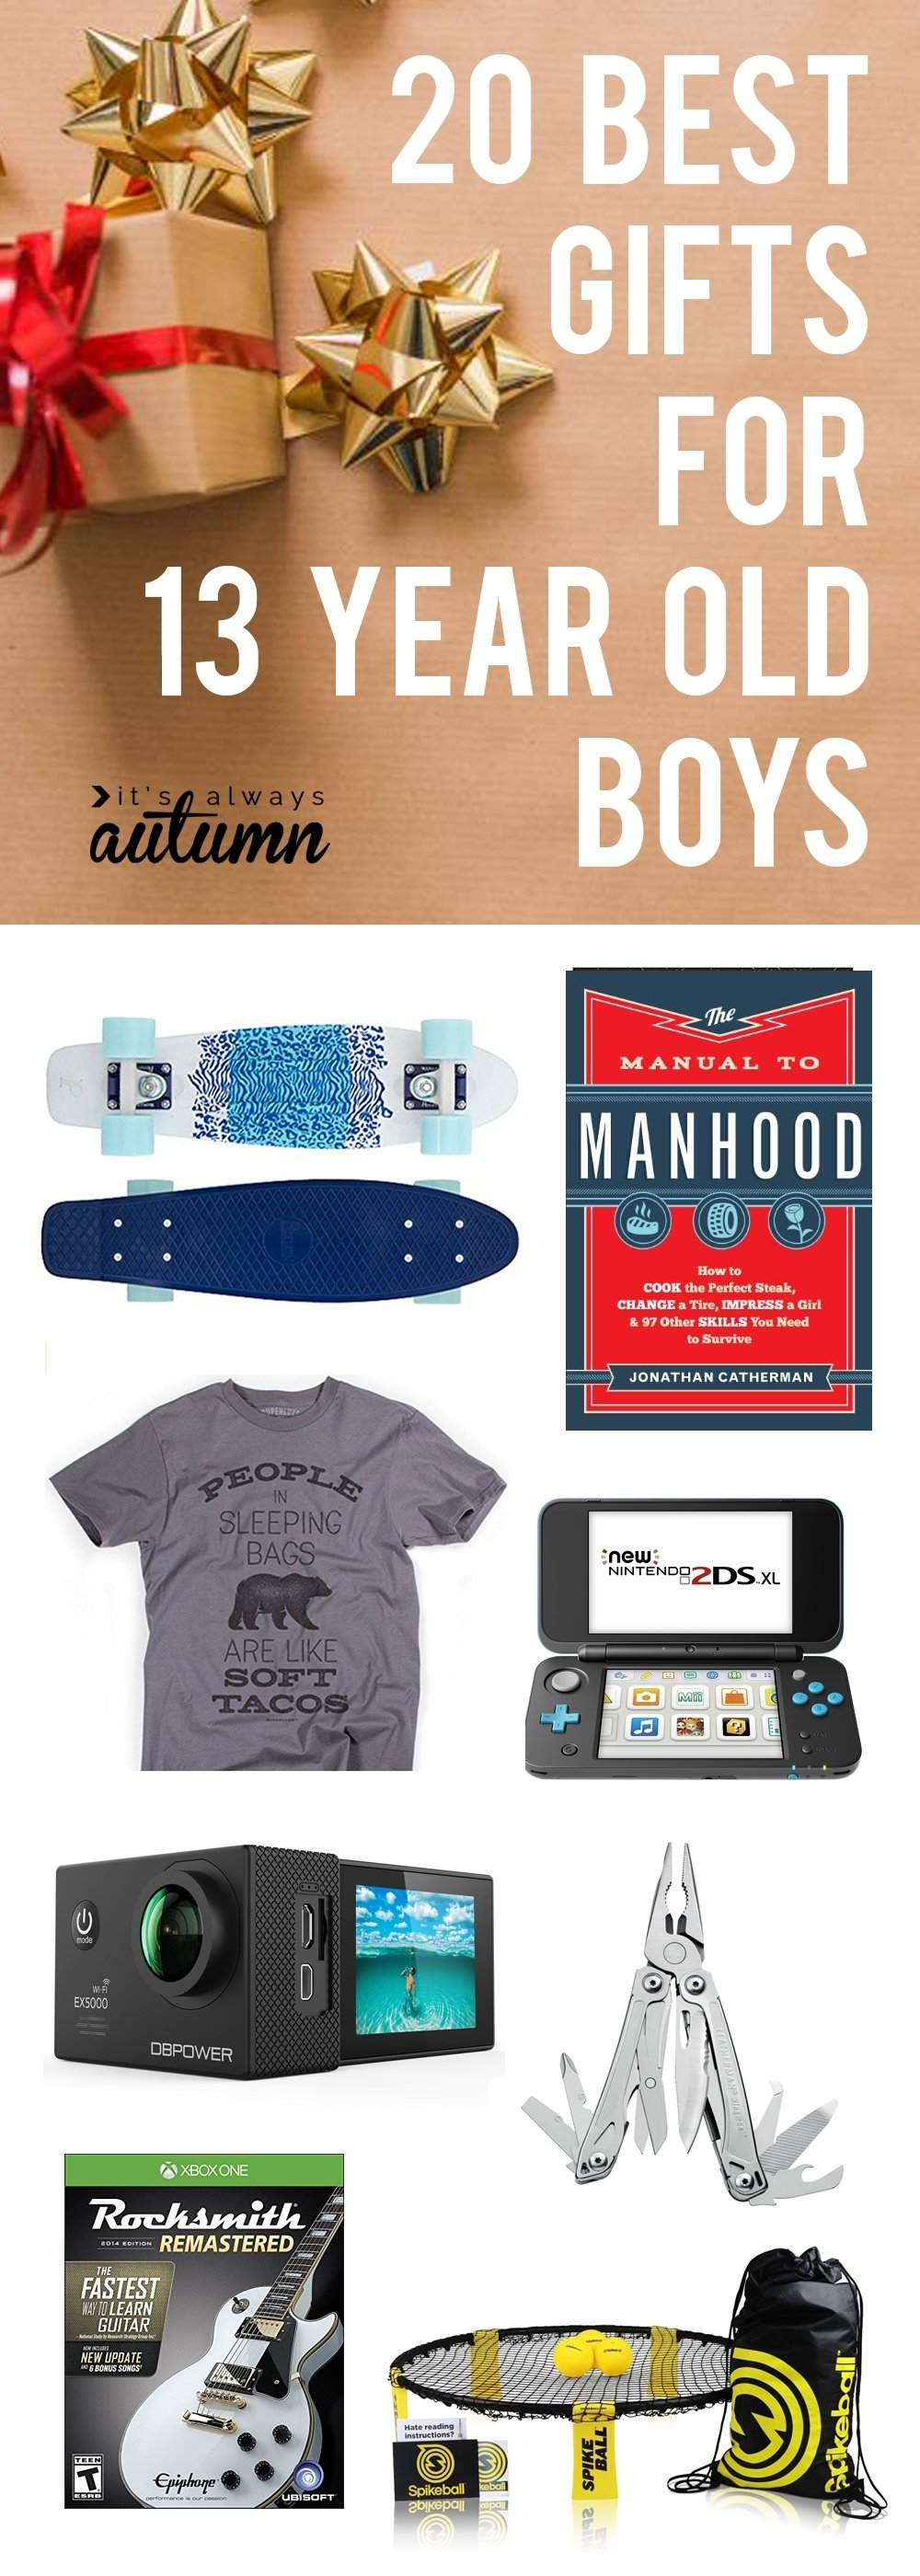 10 Famous 13 Year Old Boy Christmas Ideas best christmas gifts for 13 year old boys its always autumn 12 2020